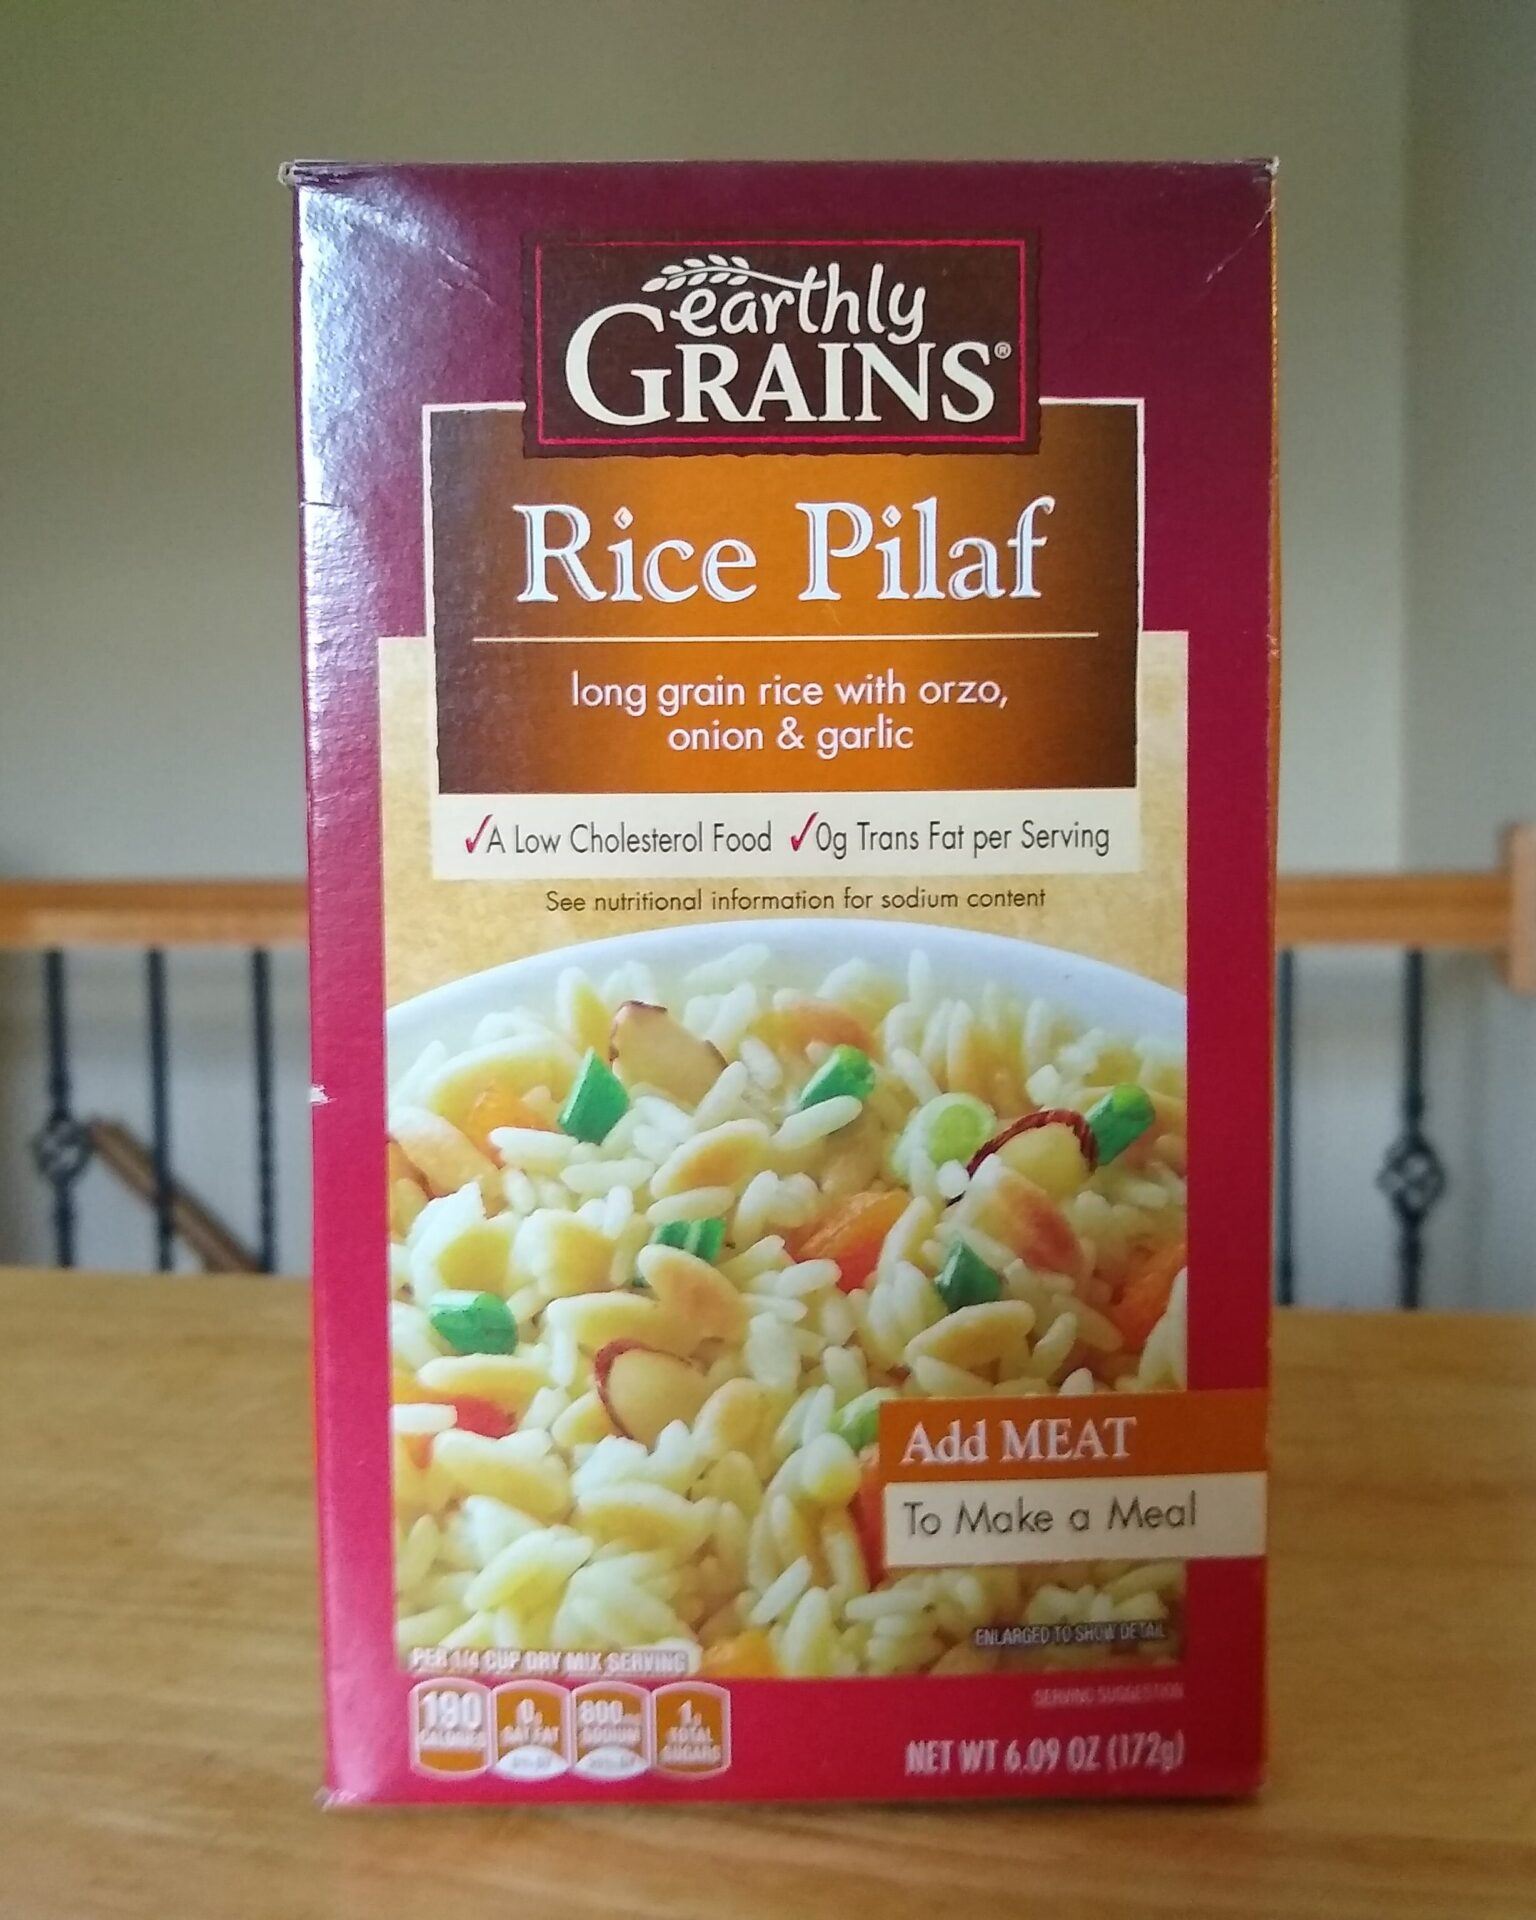 Earthly Grains Rice Pilaf